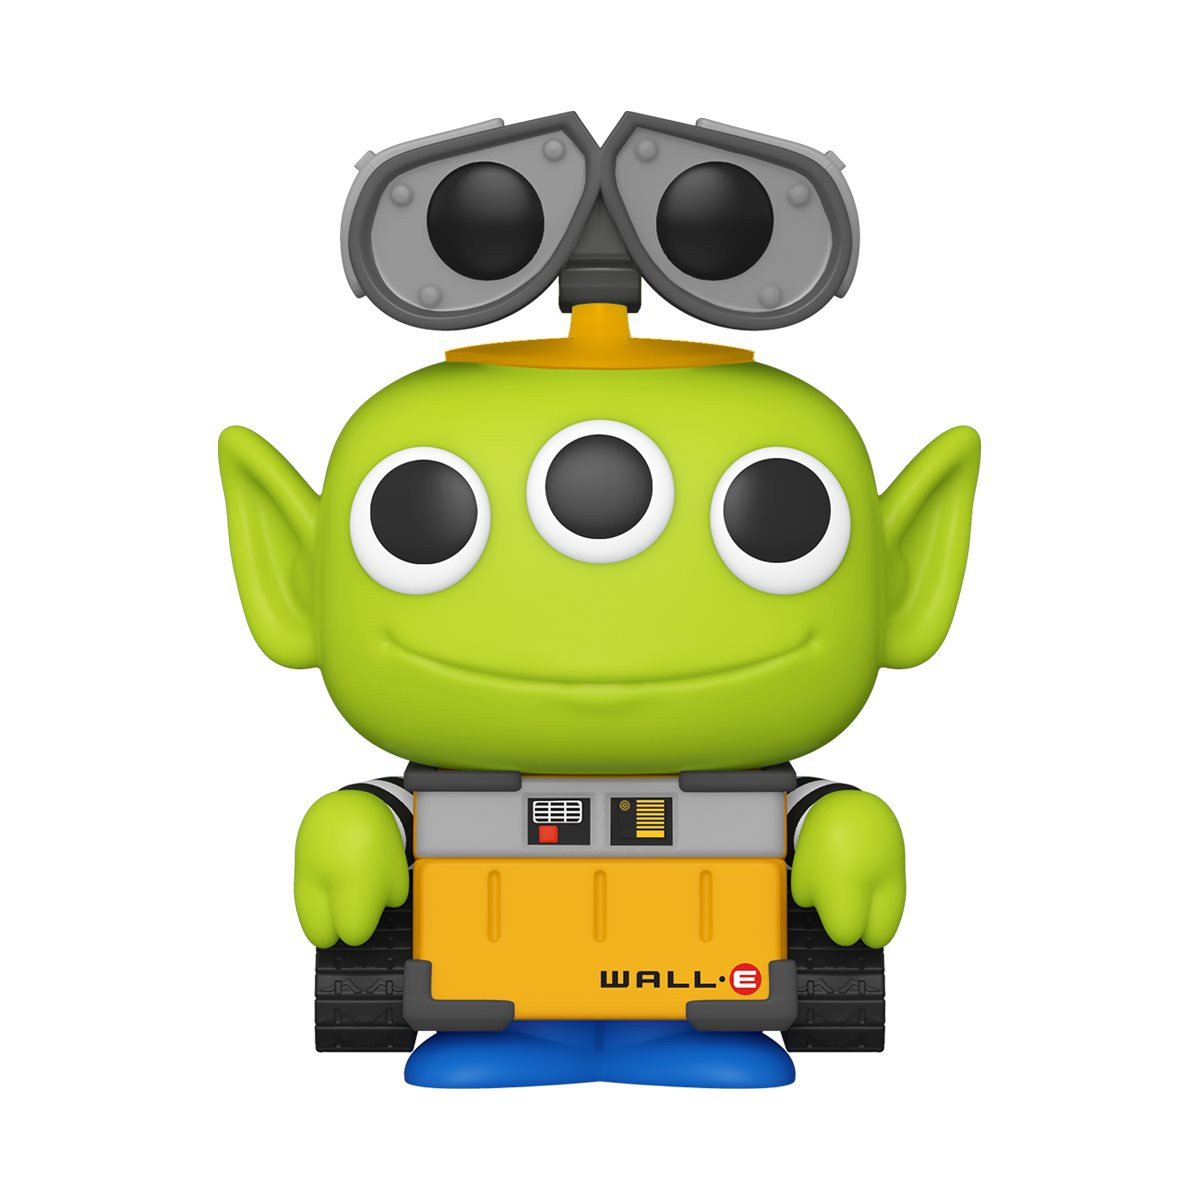 Funko Pop! Disney: Pixar Alien Remix - Alien as Wall-E #760 - Funko